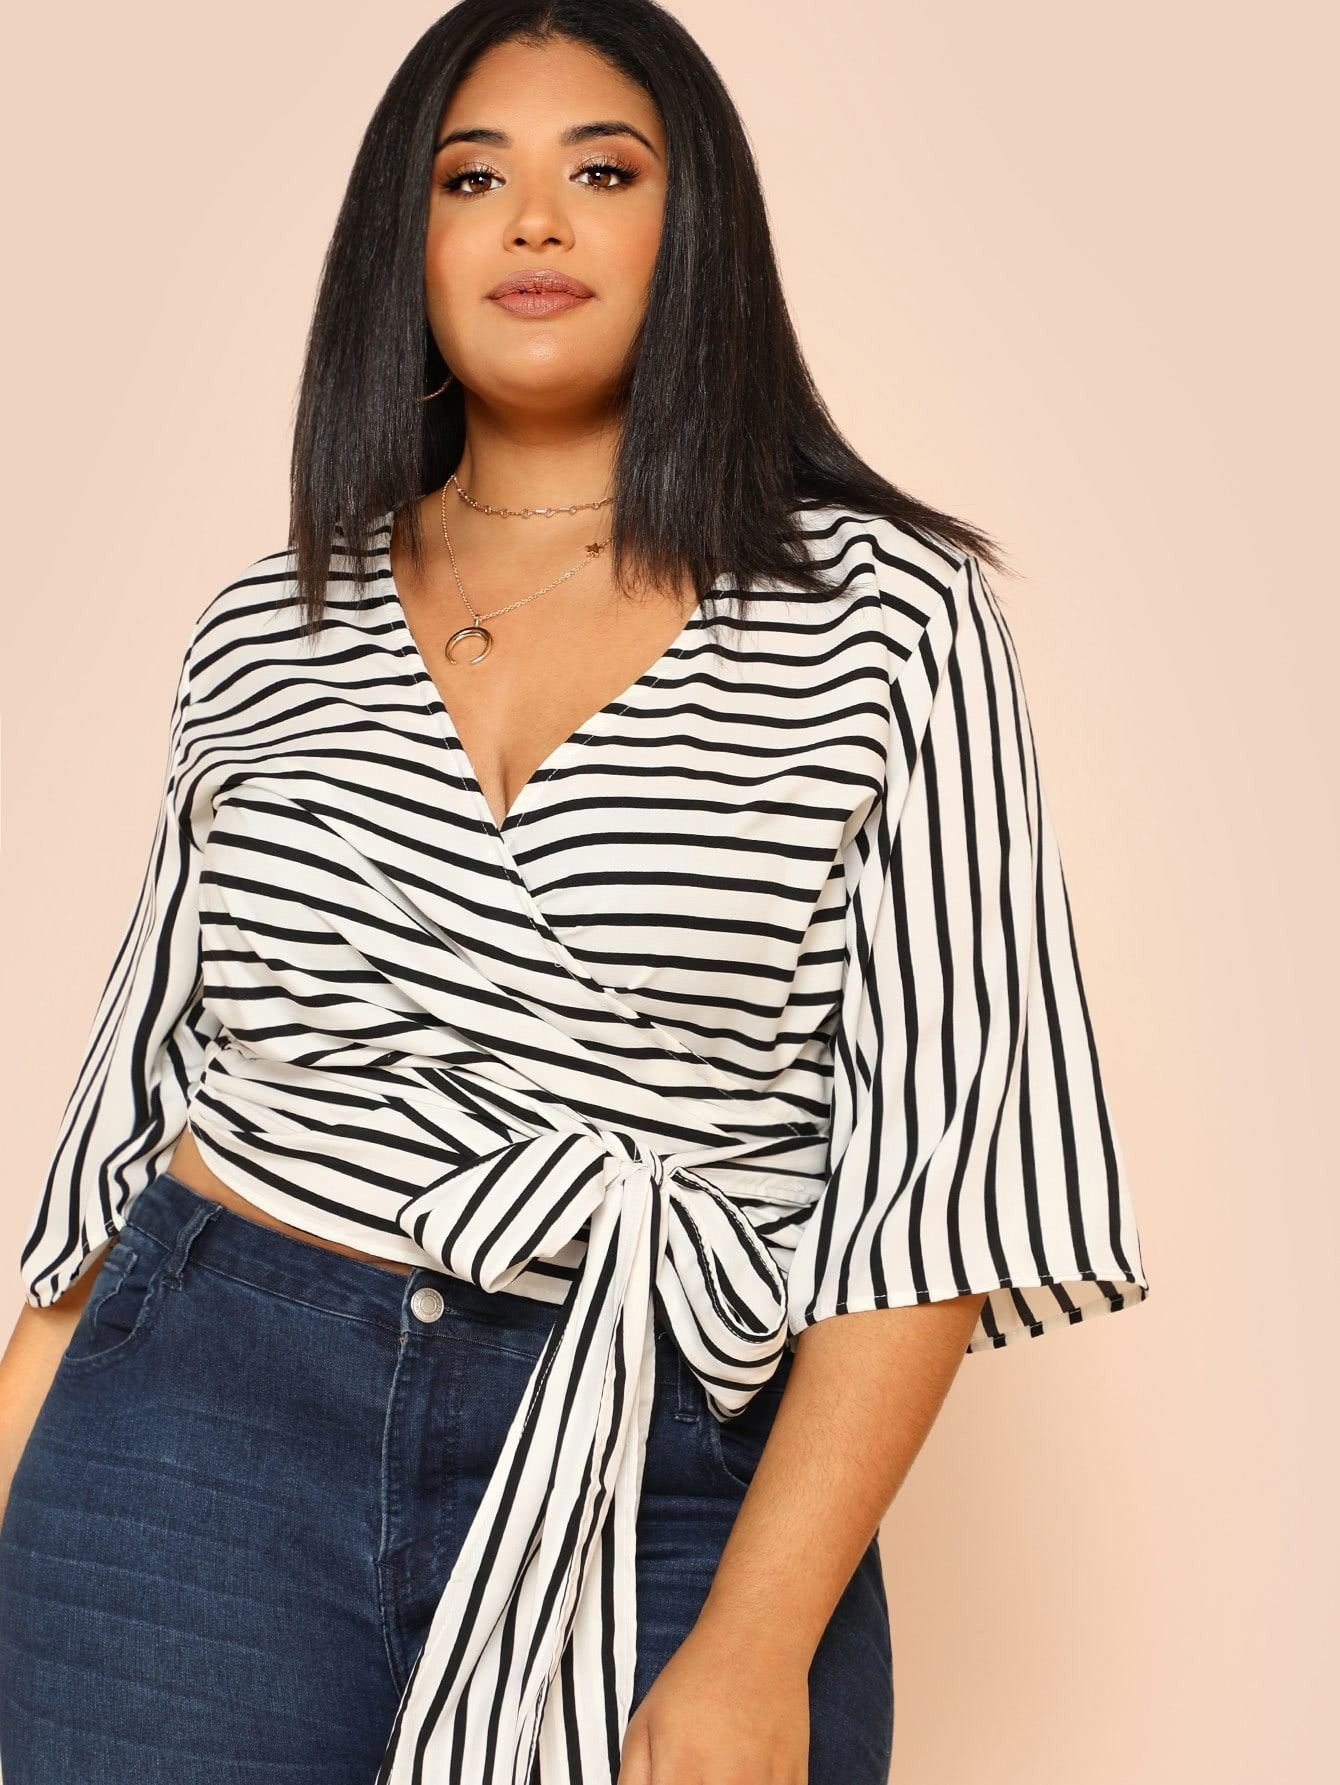 Kimono Sleeve Belted Wrap Top tryp madrid centro ex tryp washington 3 мадрид